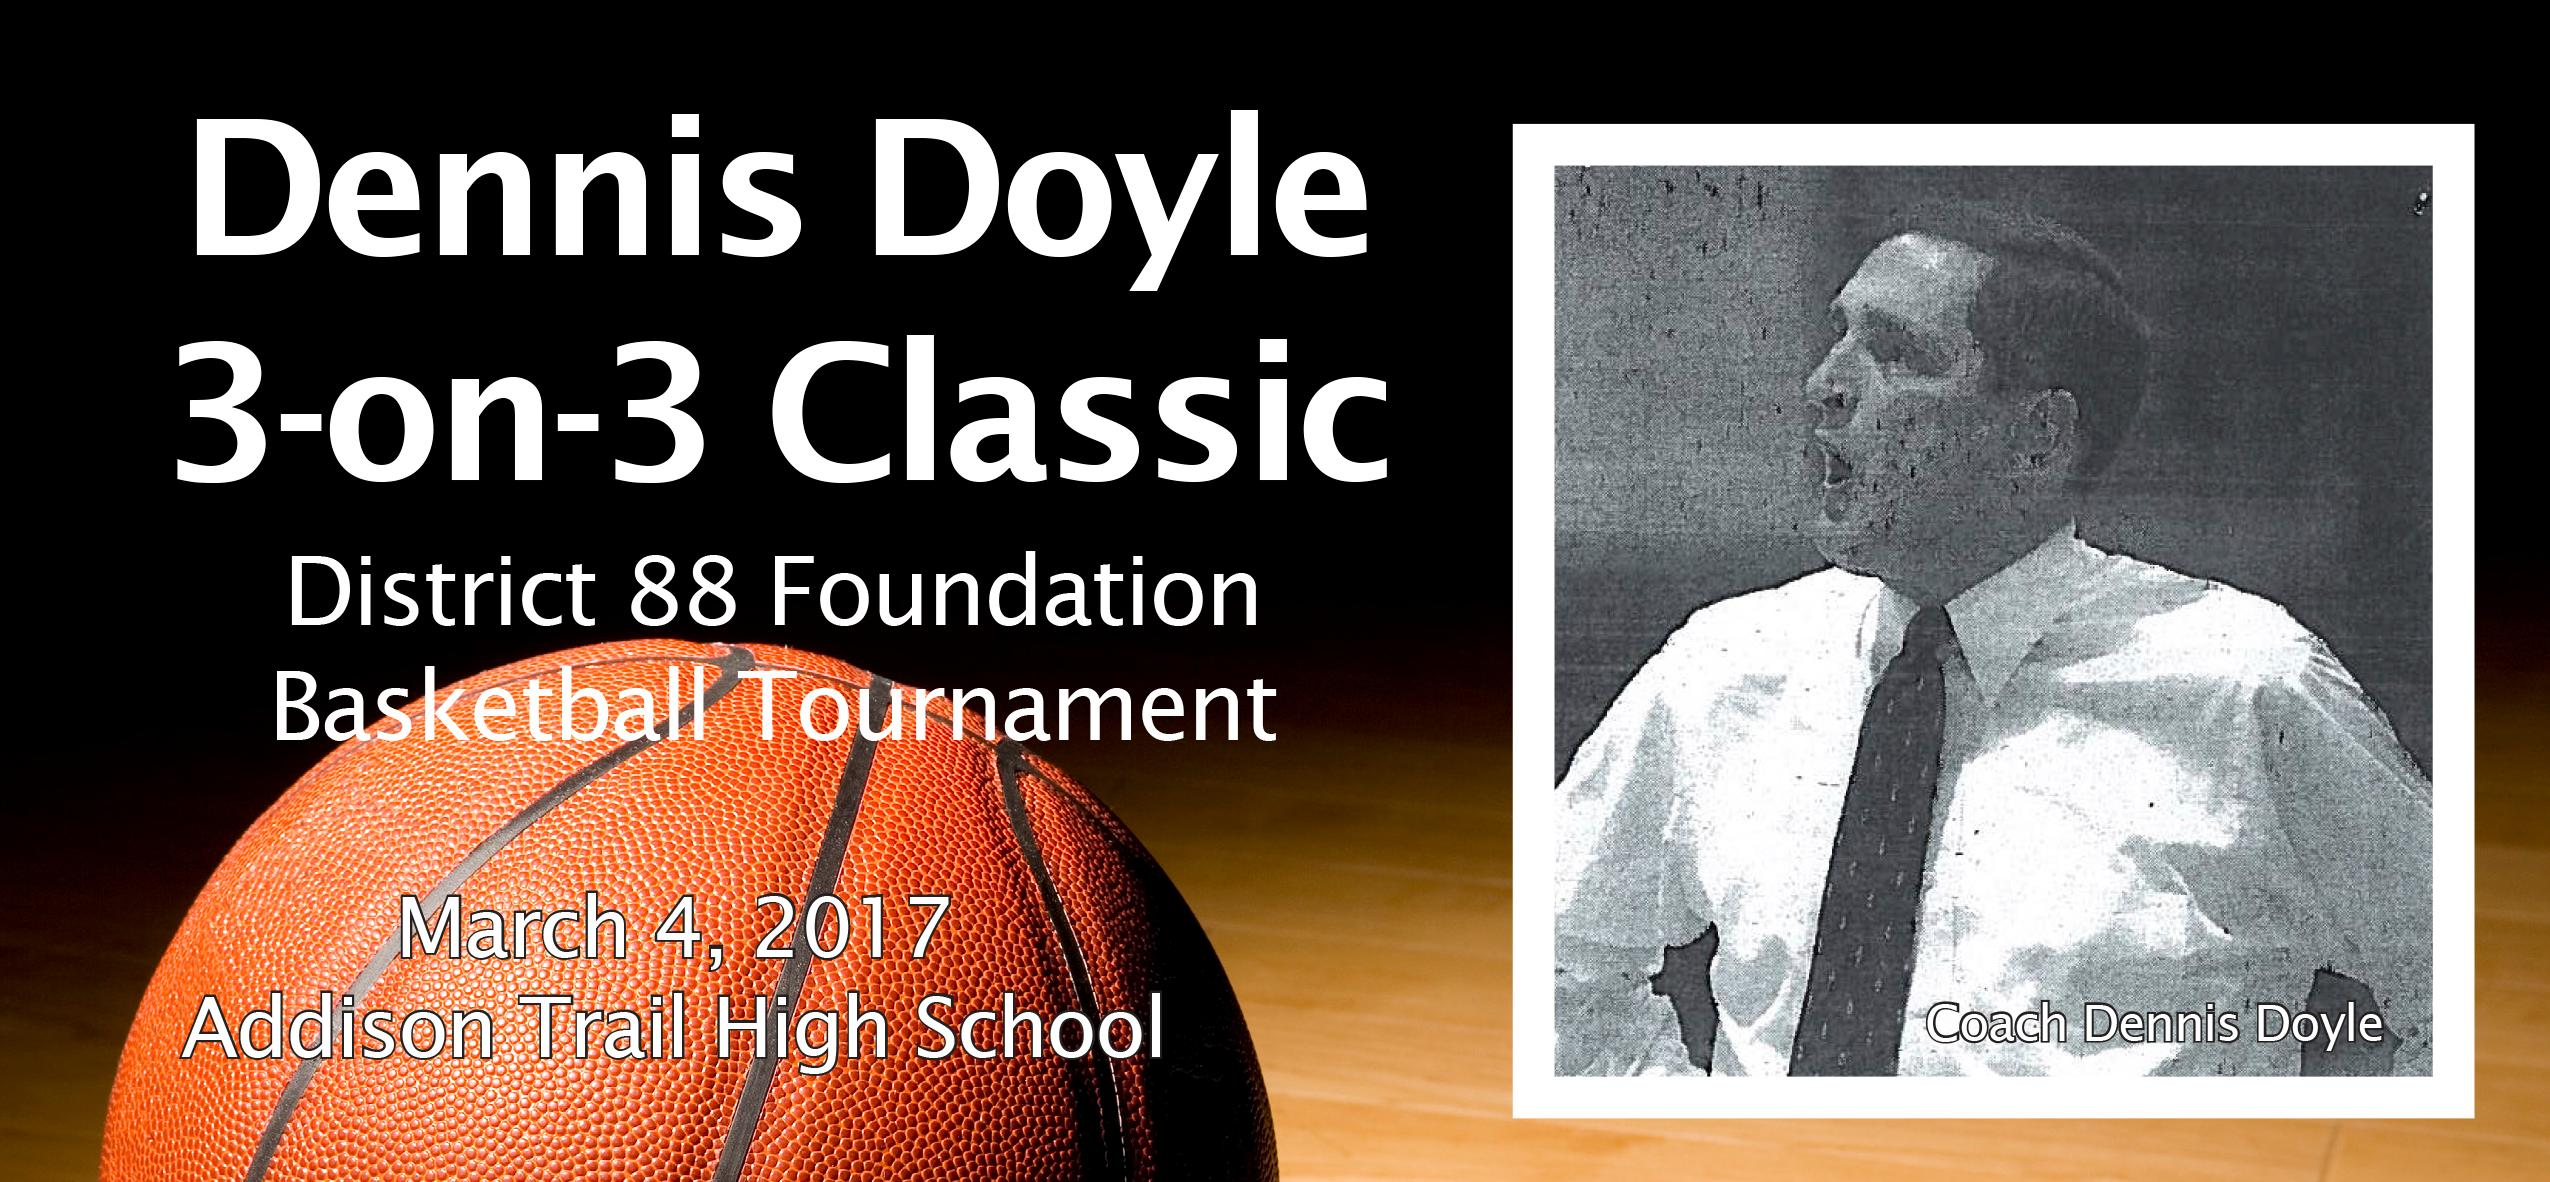 You're invited to participate in the 2017 Dennis Doyle 3-on-3 Classic District 88 Foundation Basketball Tournament